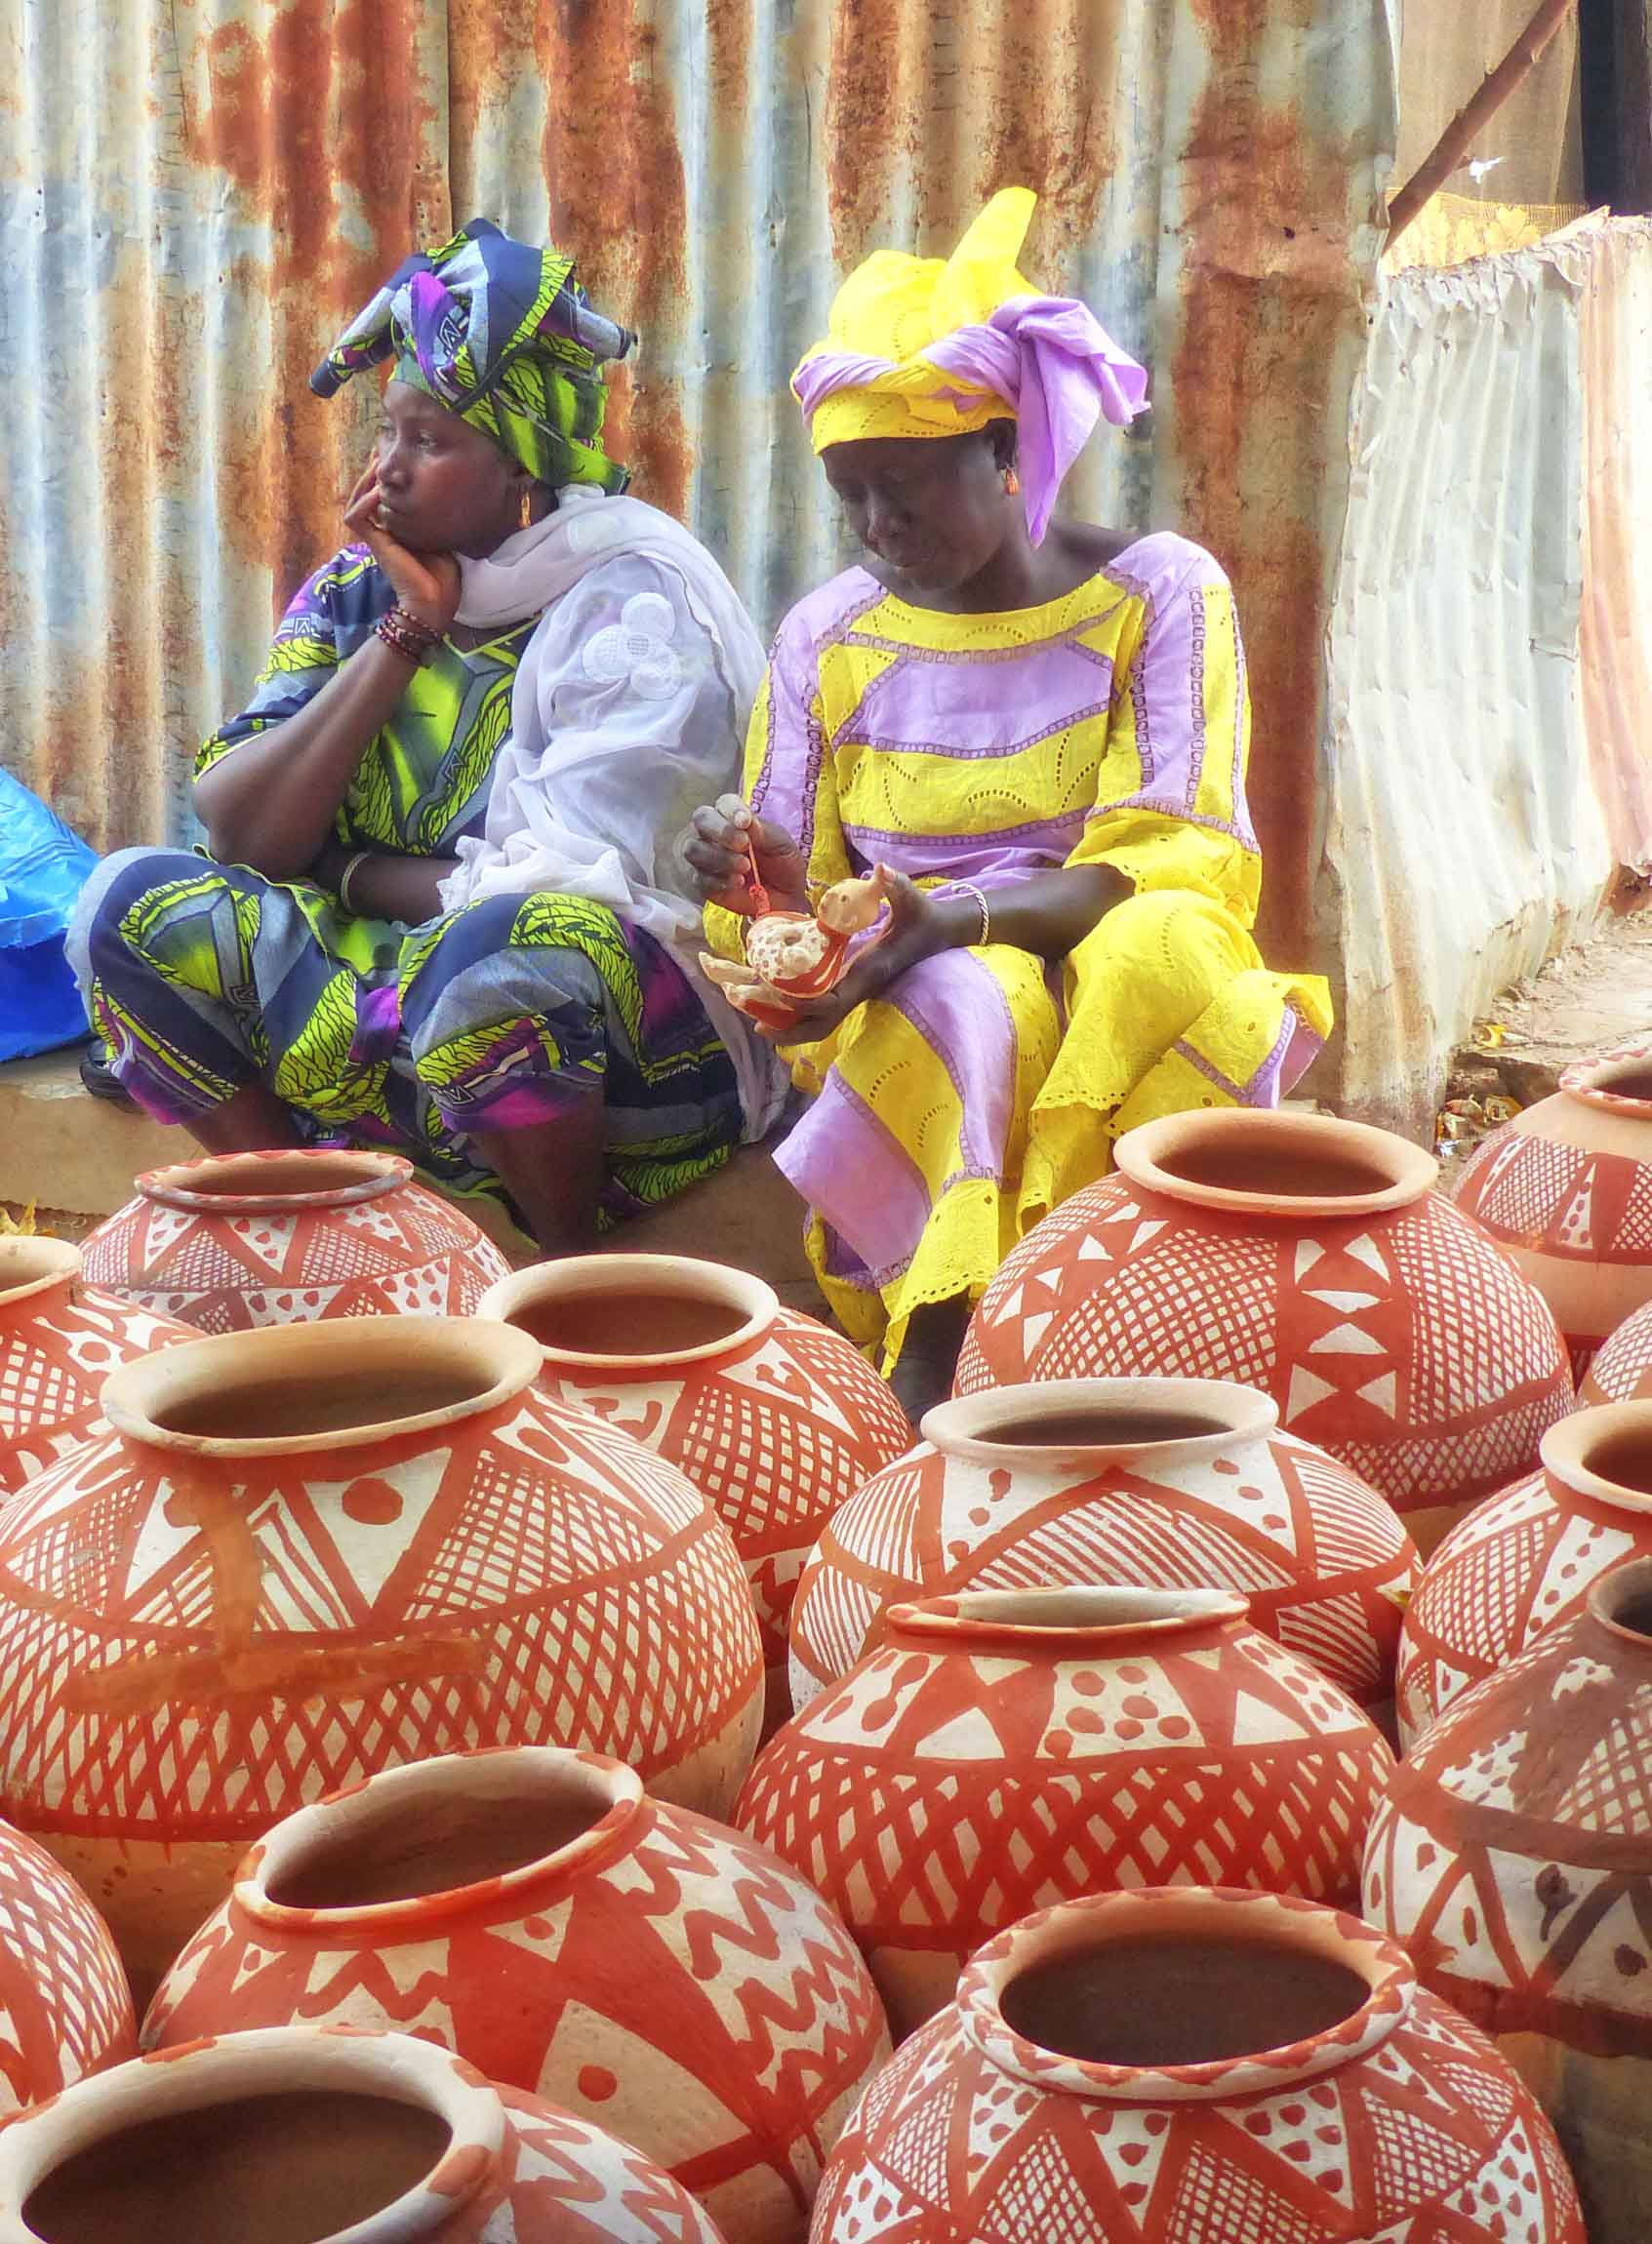 Two women in African dress selling pottery